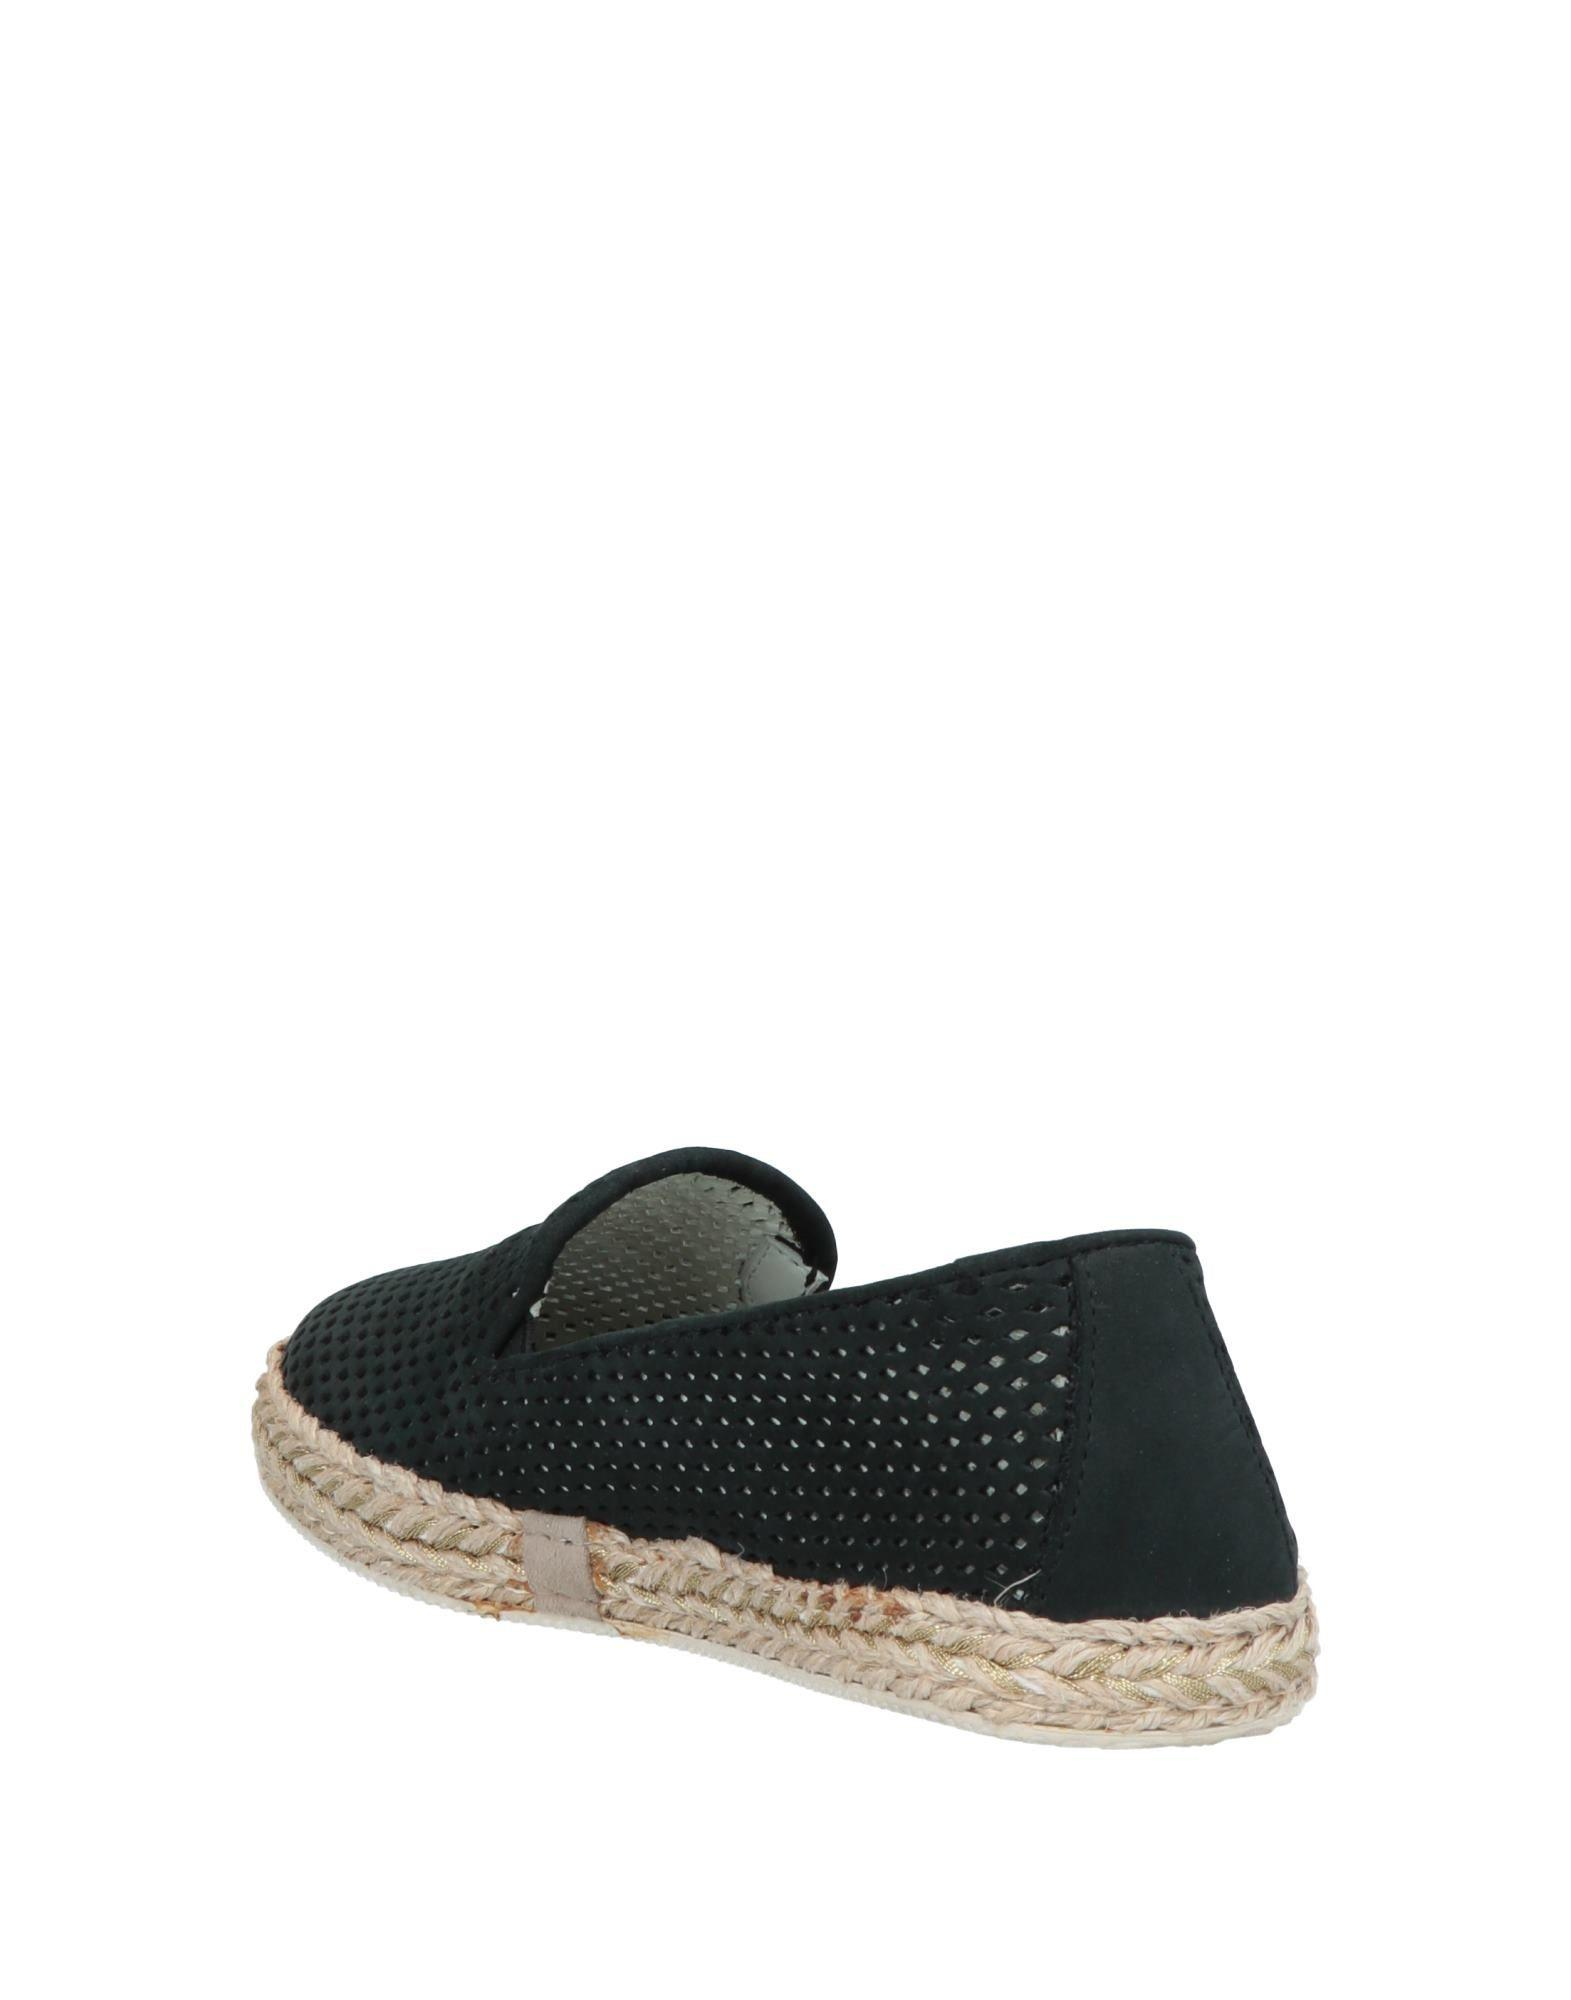 Espadrilles CHAUSSURES Botticelli CHAUSSURES Botticelli Espadrilles CHAUSSURES Botticelli 8fn1w0qRxp